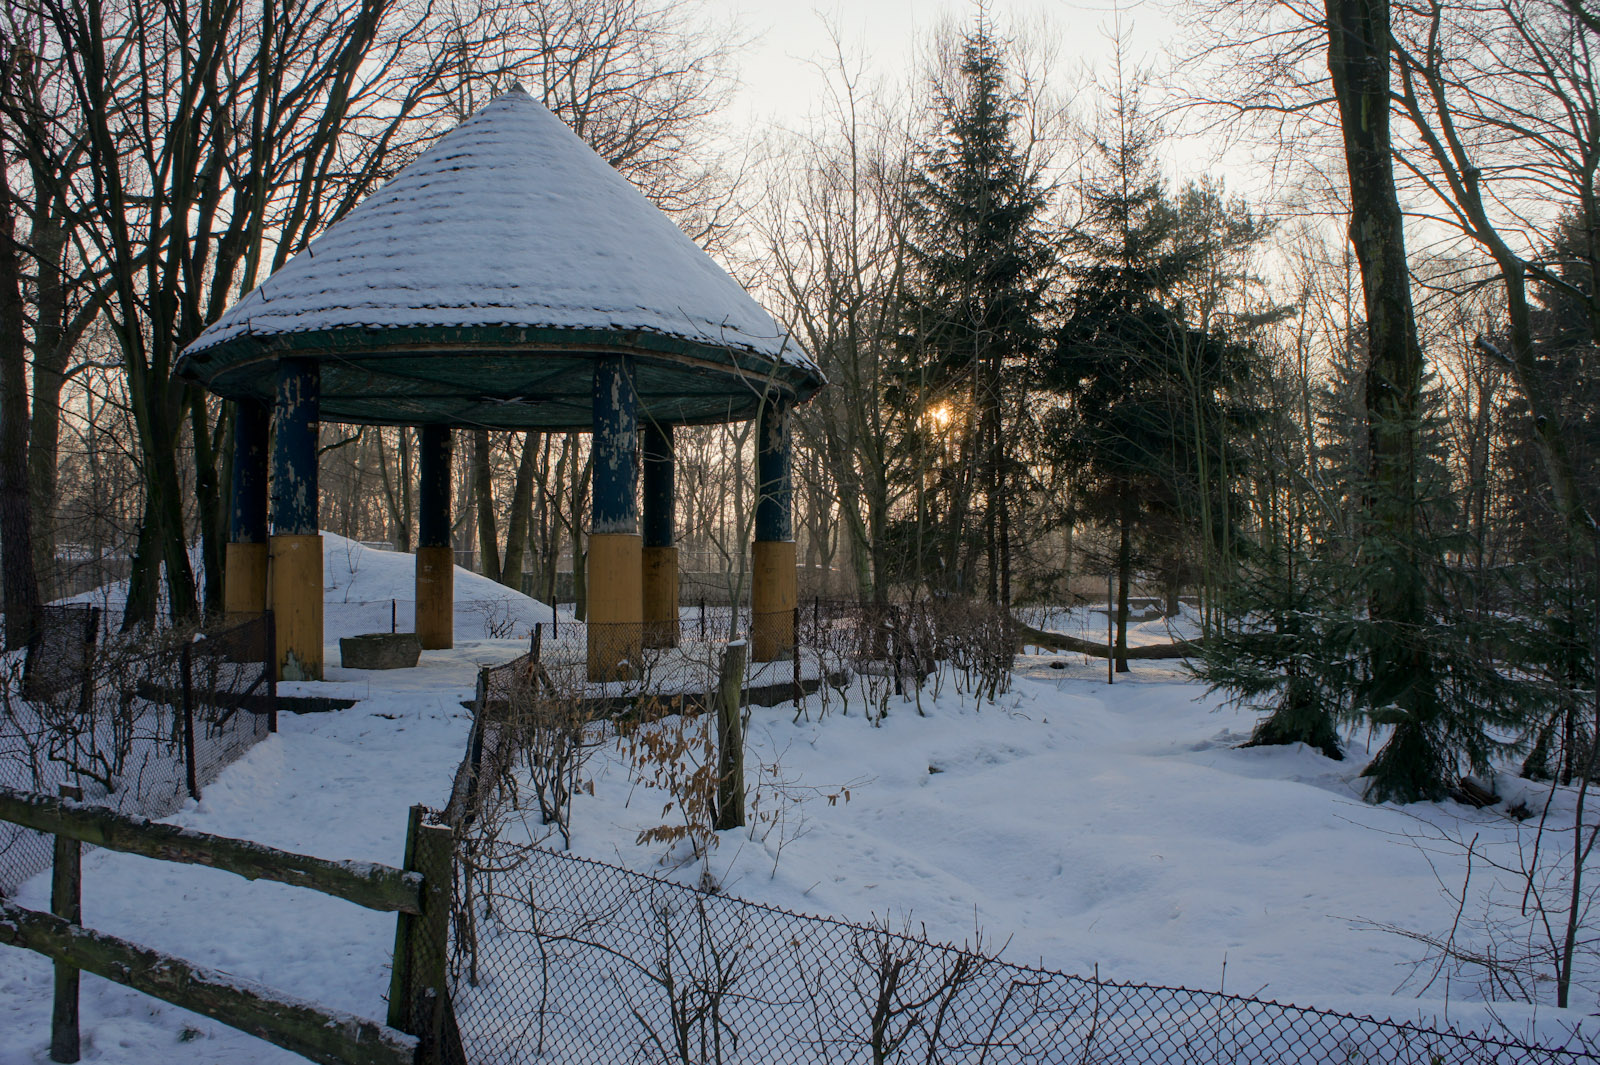 Historical gazebo in the zoo of Łódź